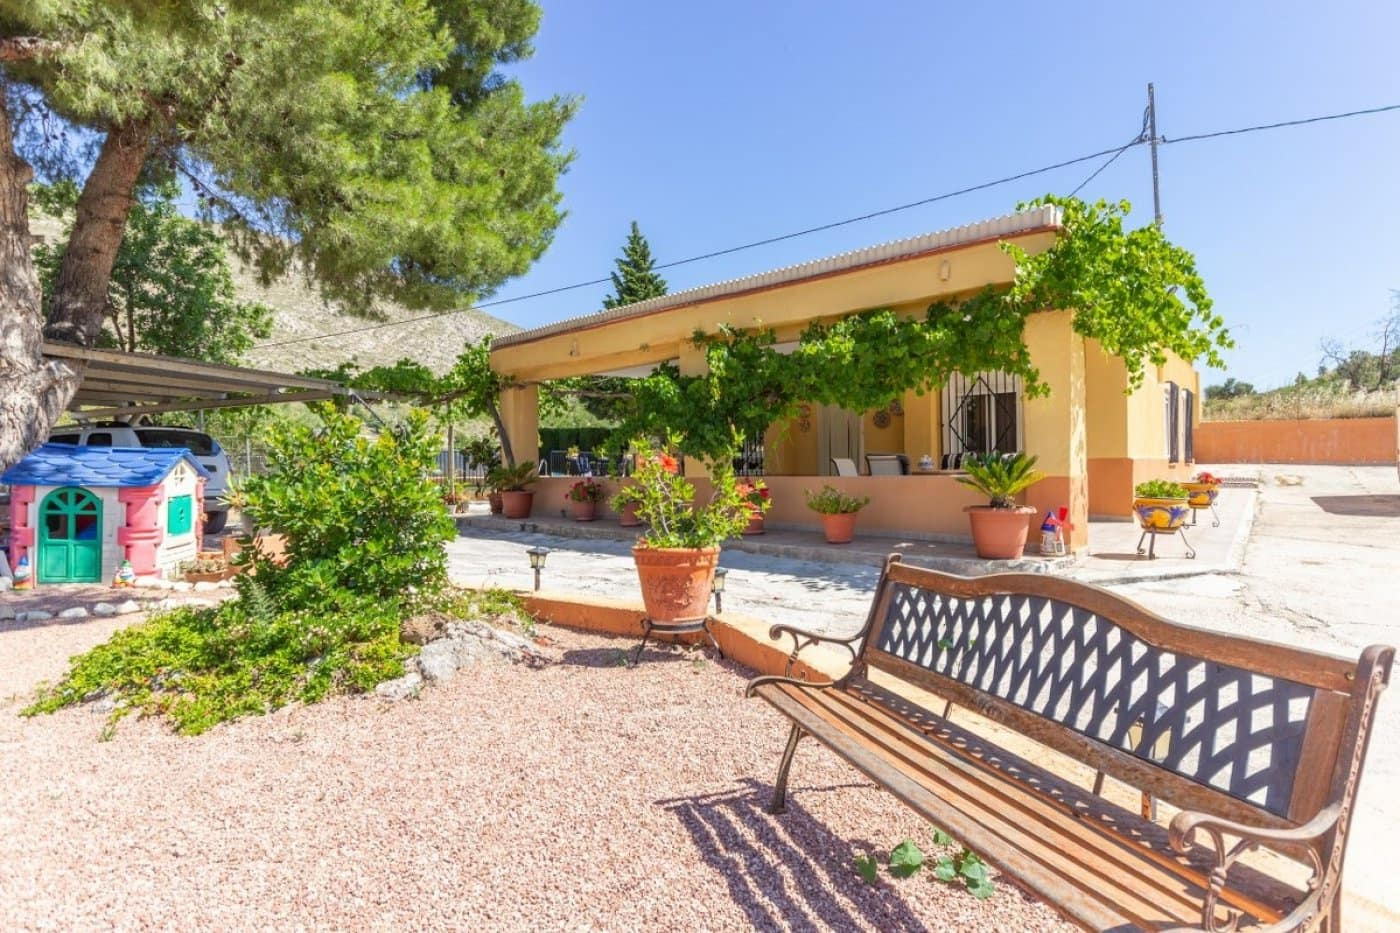 3 bedroom Finca/Country House for sale in Petrel / Petrer - € 142,995 (Ref: 5268436)